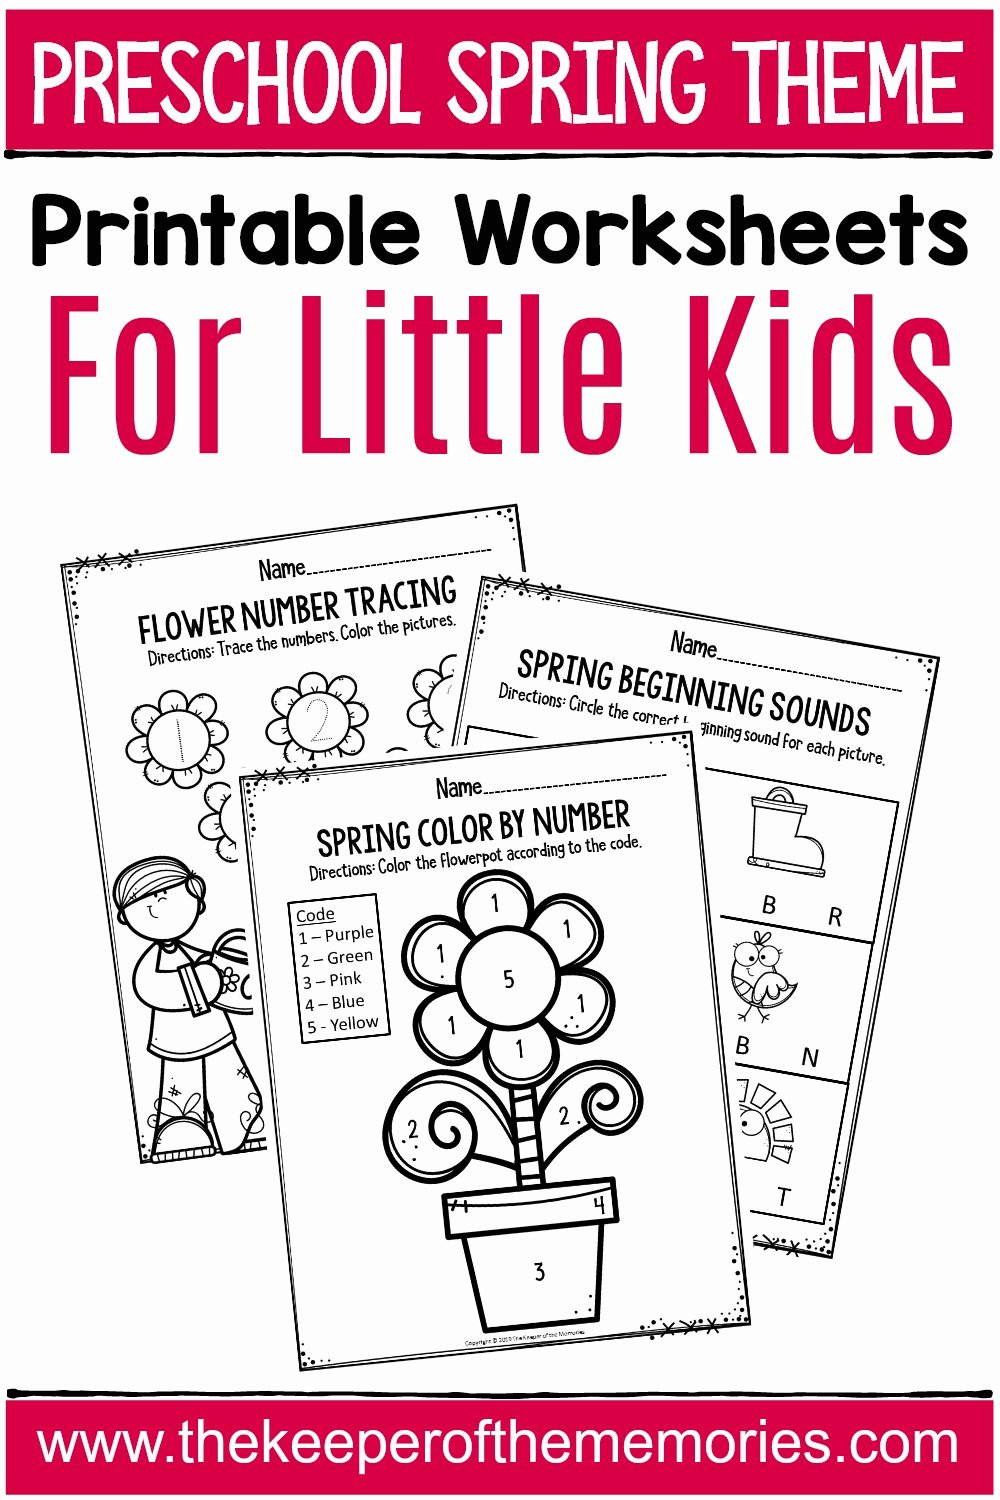 Spring Printable Worksheets for Preschoolers Fresh Spring Printable Preschool Worksheets the Keeper Of the